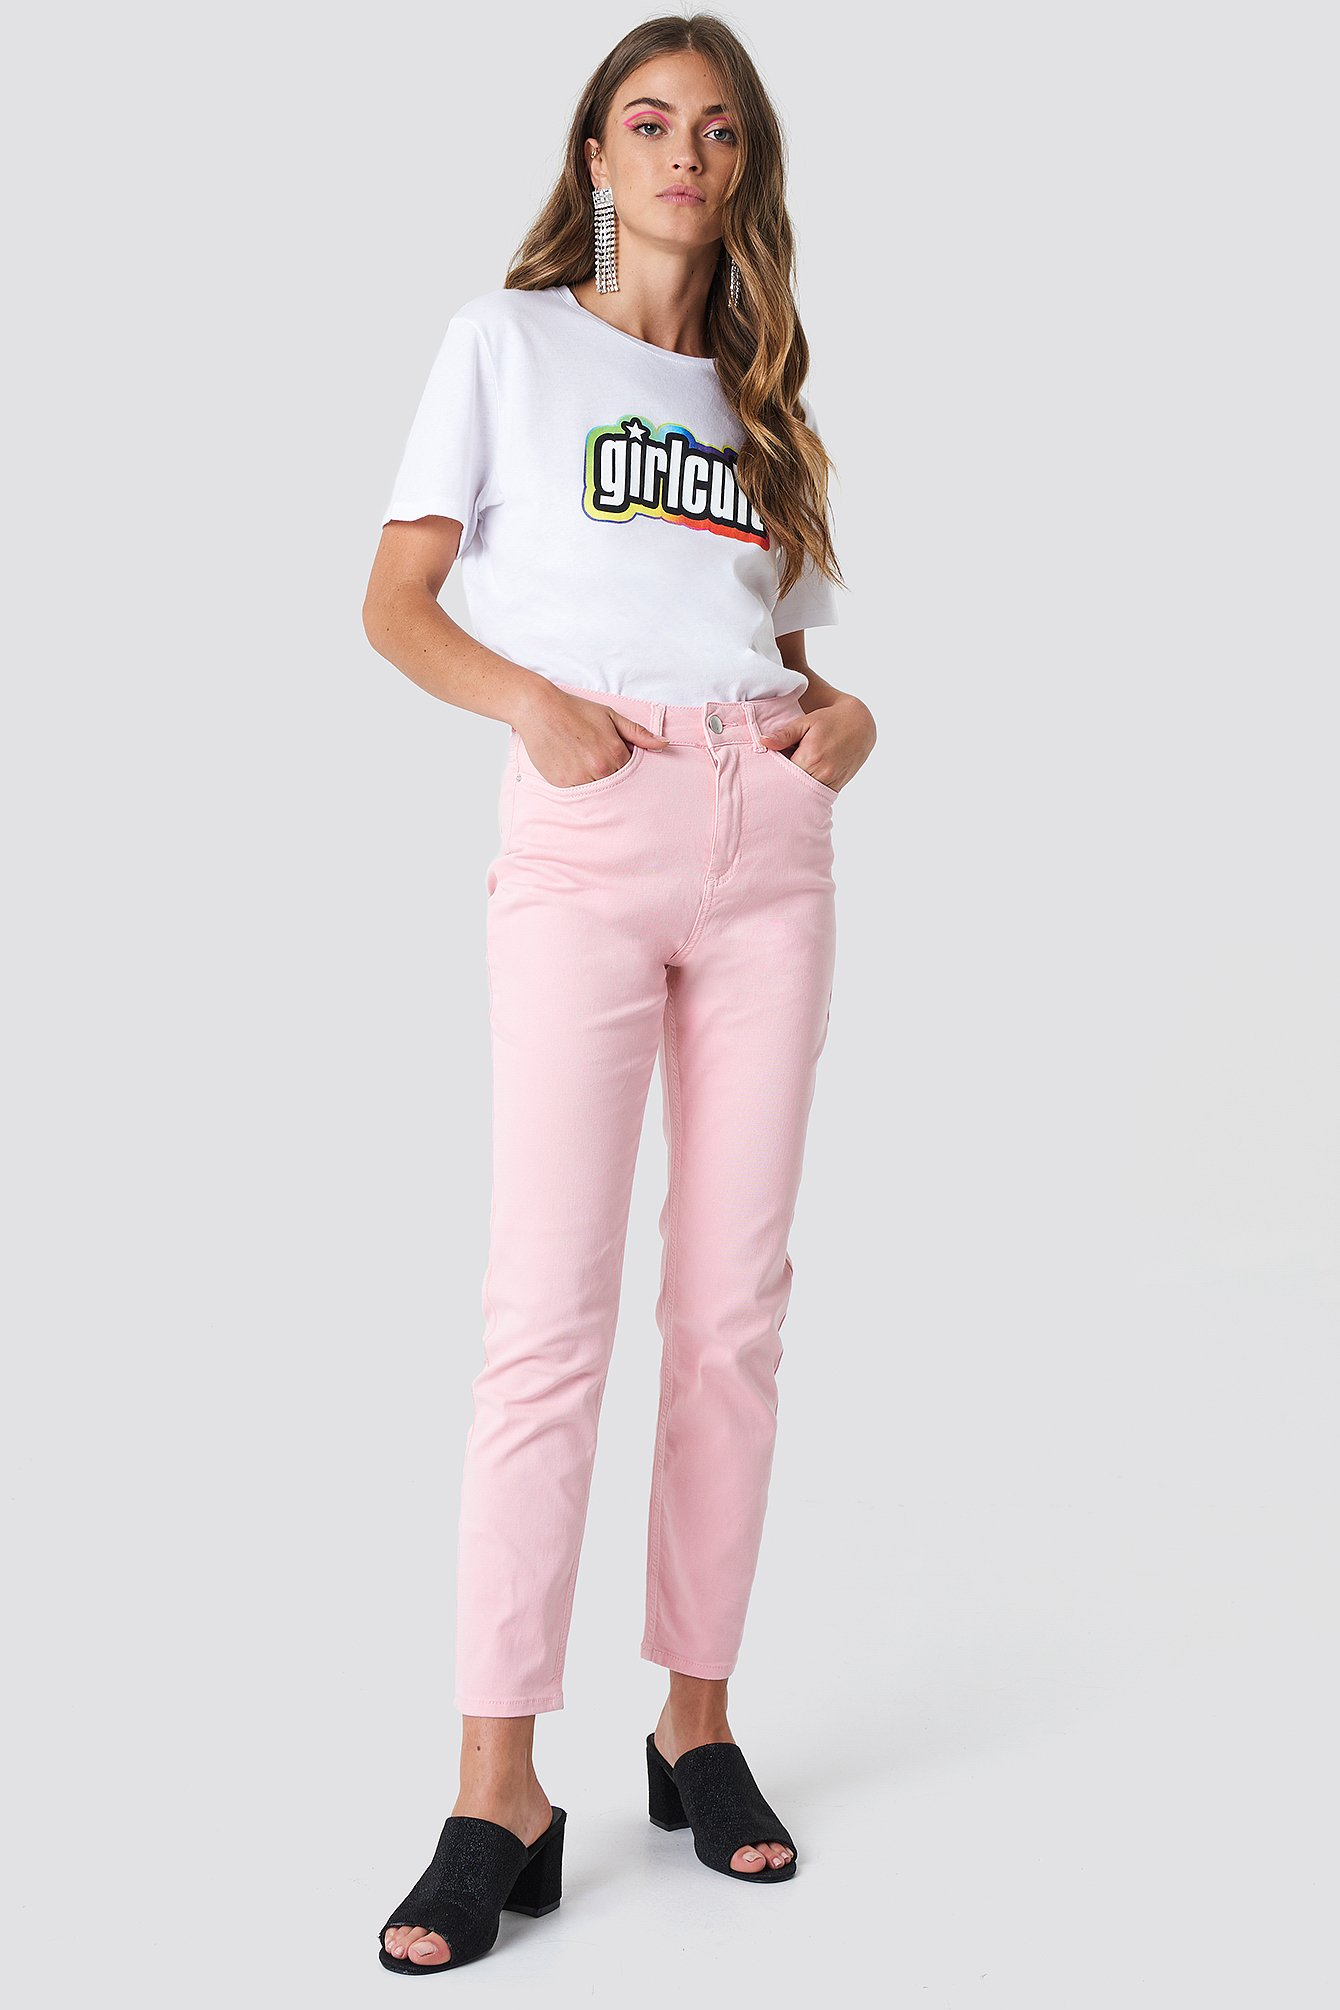 GALORE X NA-KD PINK MOM JEANS - PINK